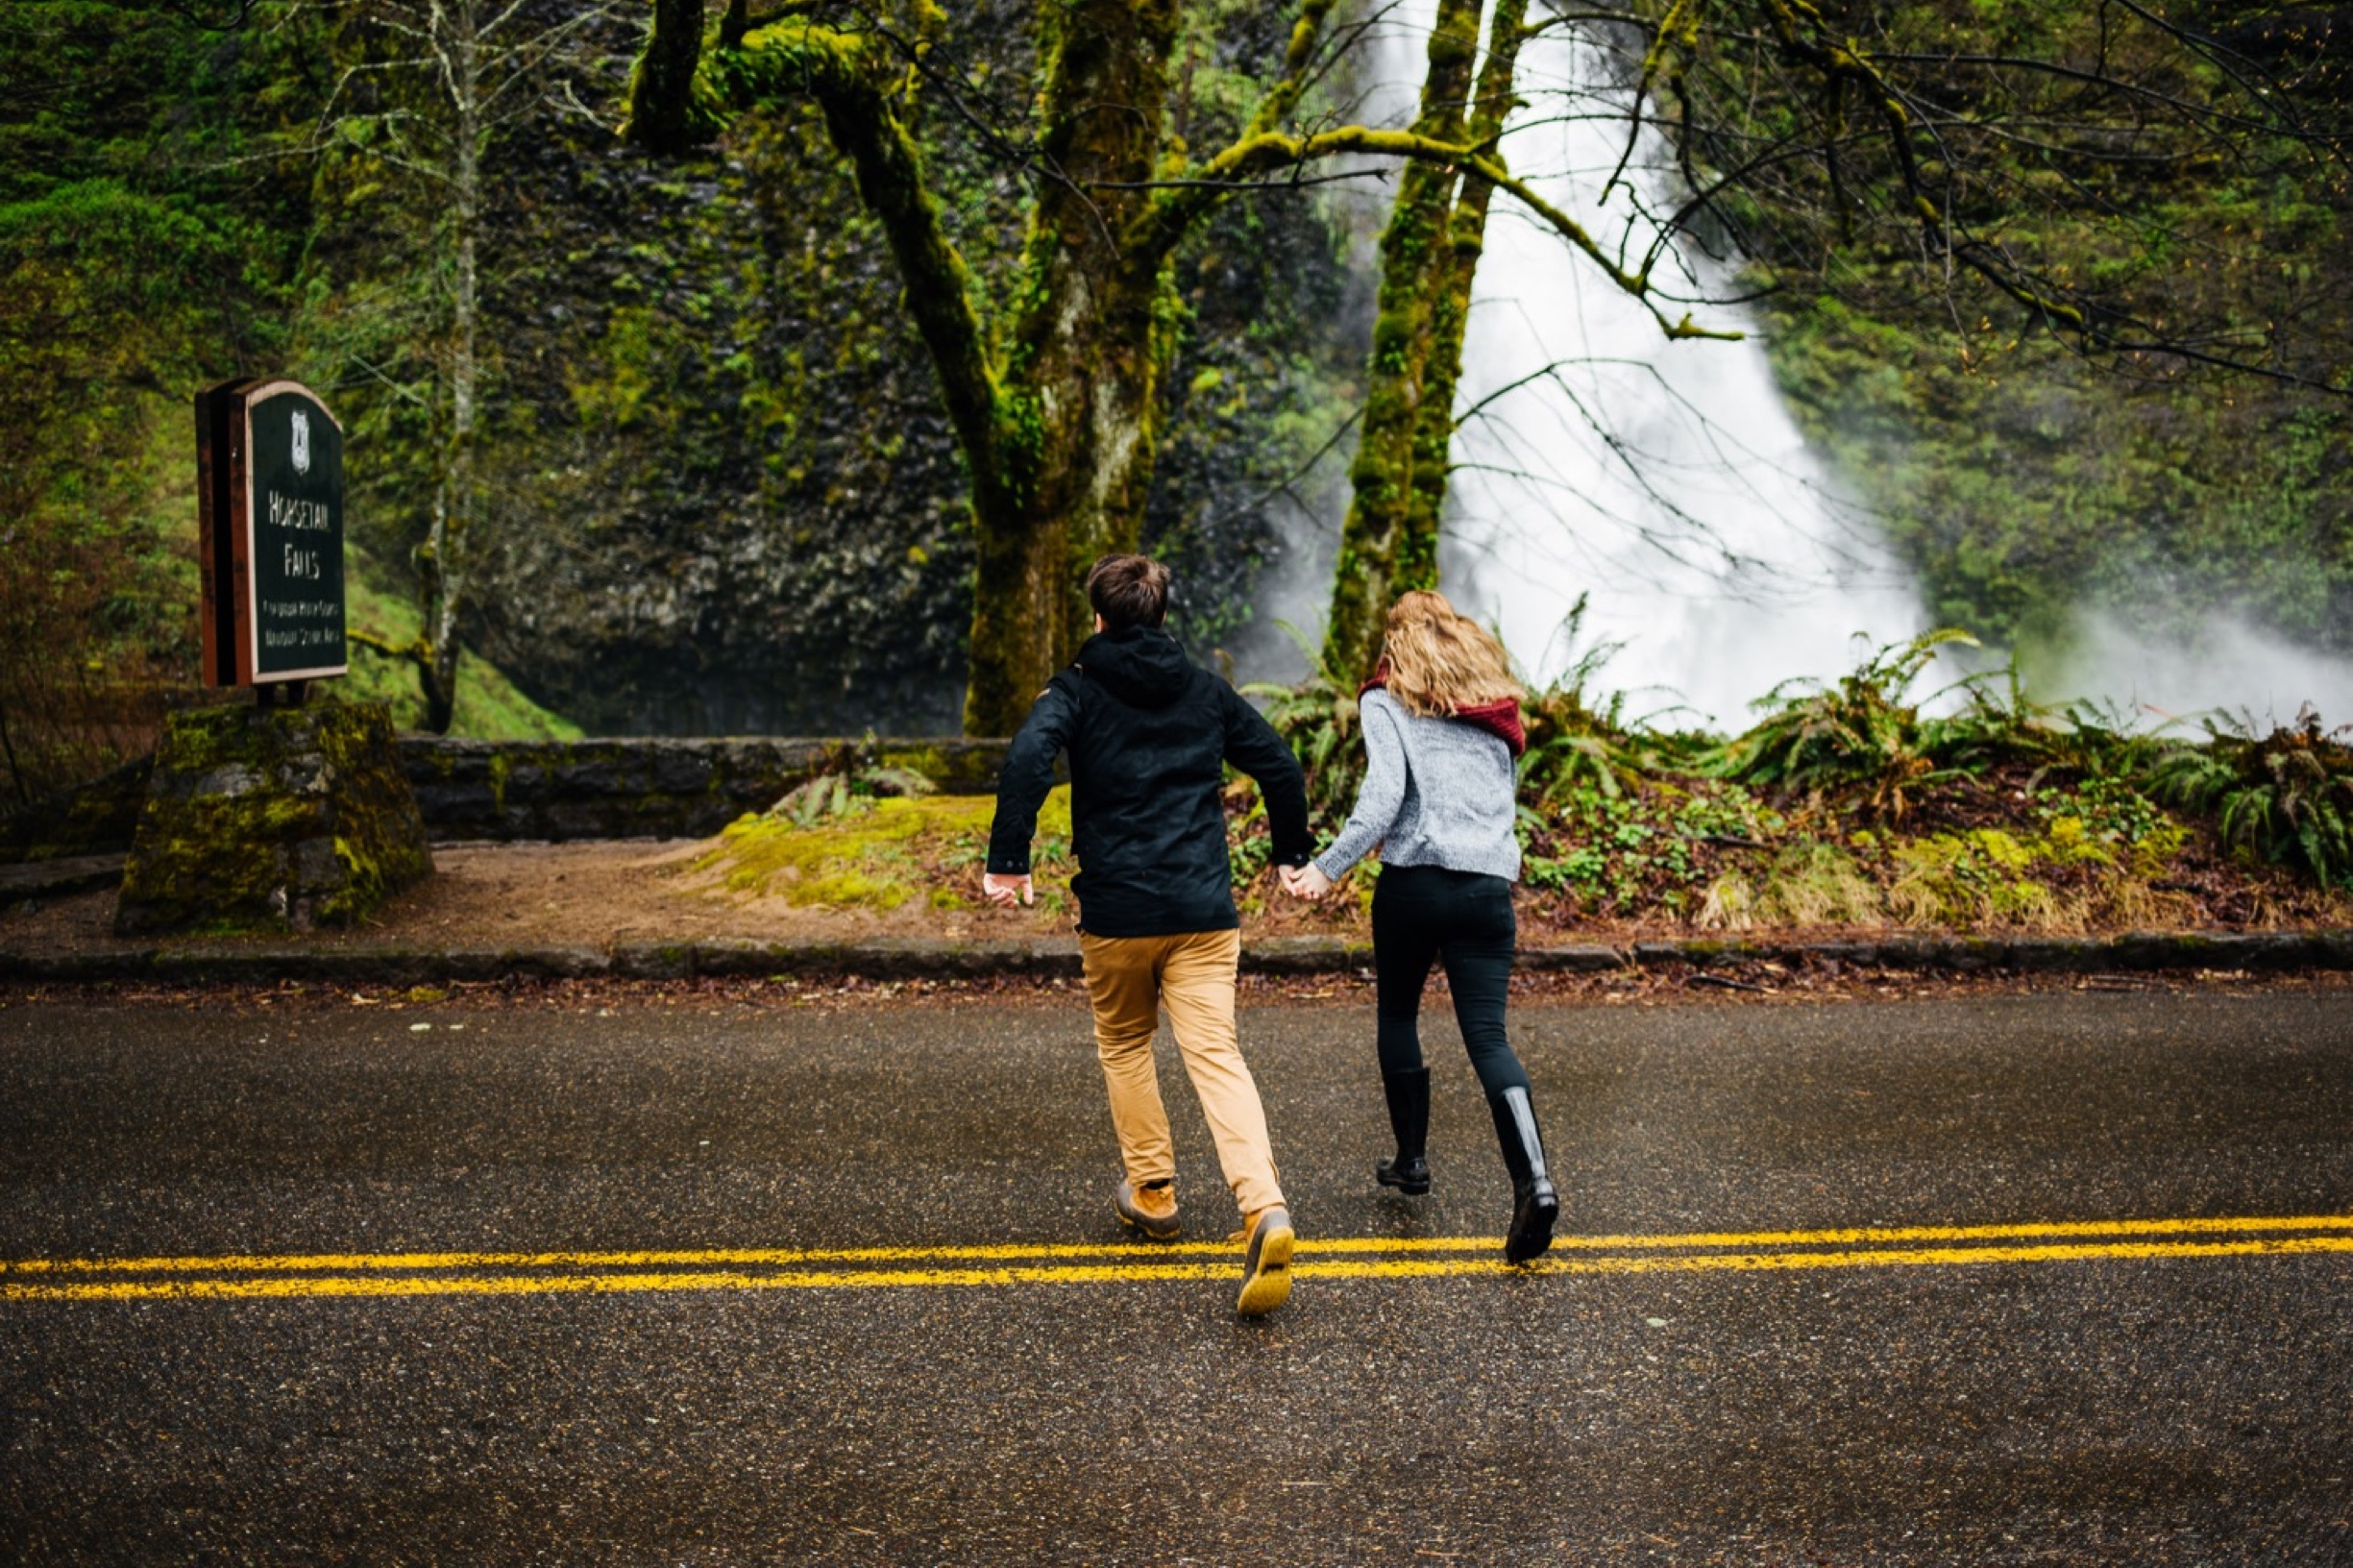 Waterfall Engagement Photos at the Columbia River Gorge Portland, Engaged, Engagement, She Said Yes, He Put a Ring on It, How He Asked, Horse Trail Falls, Horse Trail Waterfall Portland, Oregon Waterfall,, Columbia River Gorge Engagement Photos, Portland Waterfall, Portland Oregon Engagement Photos, Oregon Engagement Photographer, Portland Engagement Photographer, Portland Engagement Photography, Where to Take Engagement Photos in Portland, Candid Engagement Photos, Romantic Engagement Photos